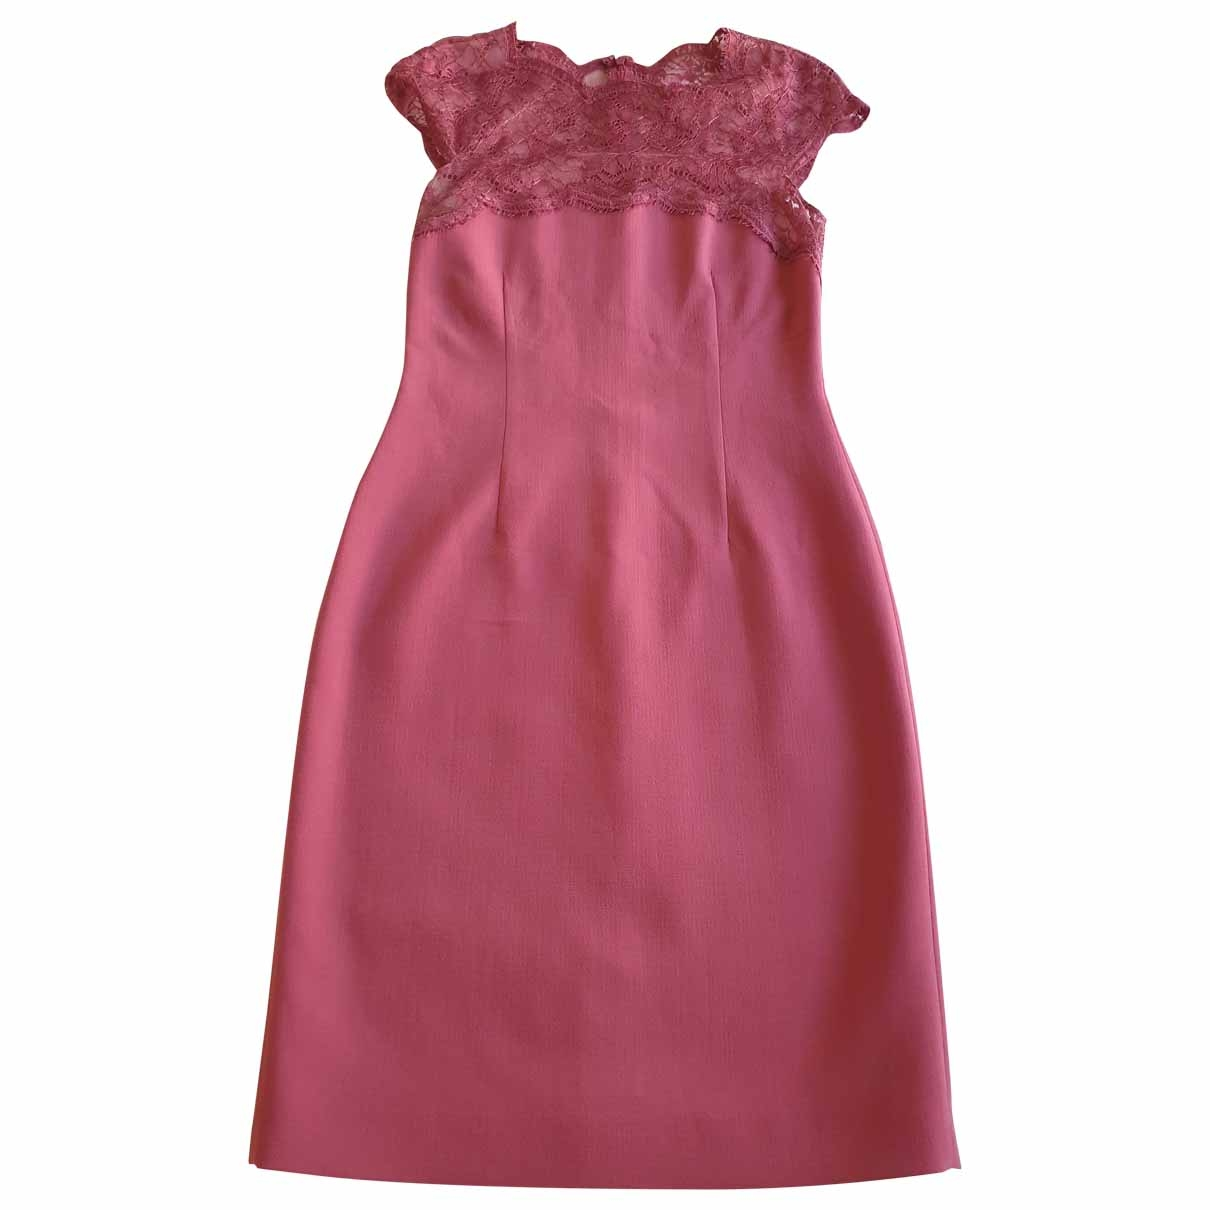 Emilio Pucci \N Pink Wool dress for Women 42 IT